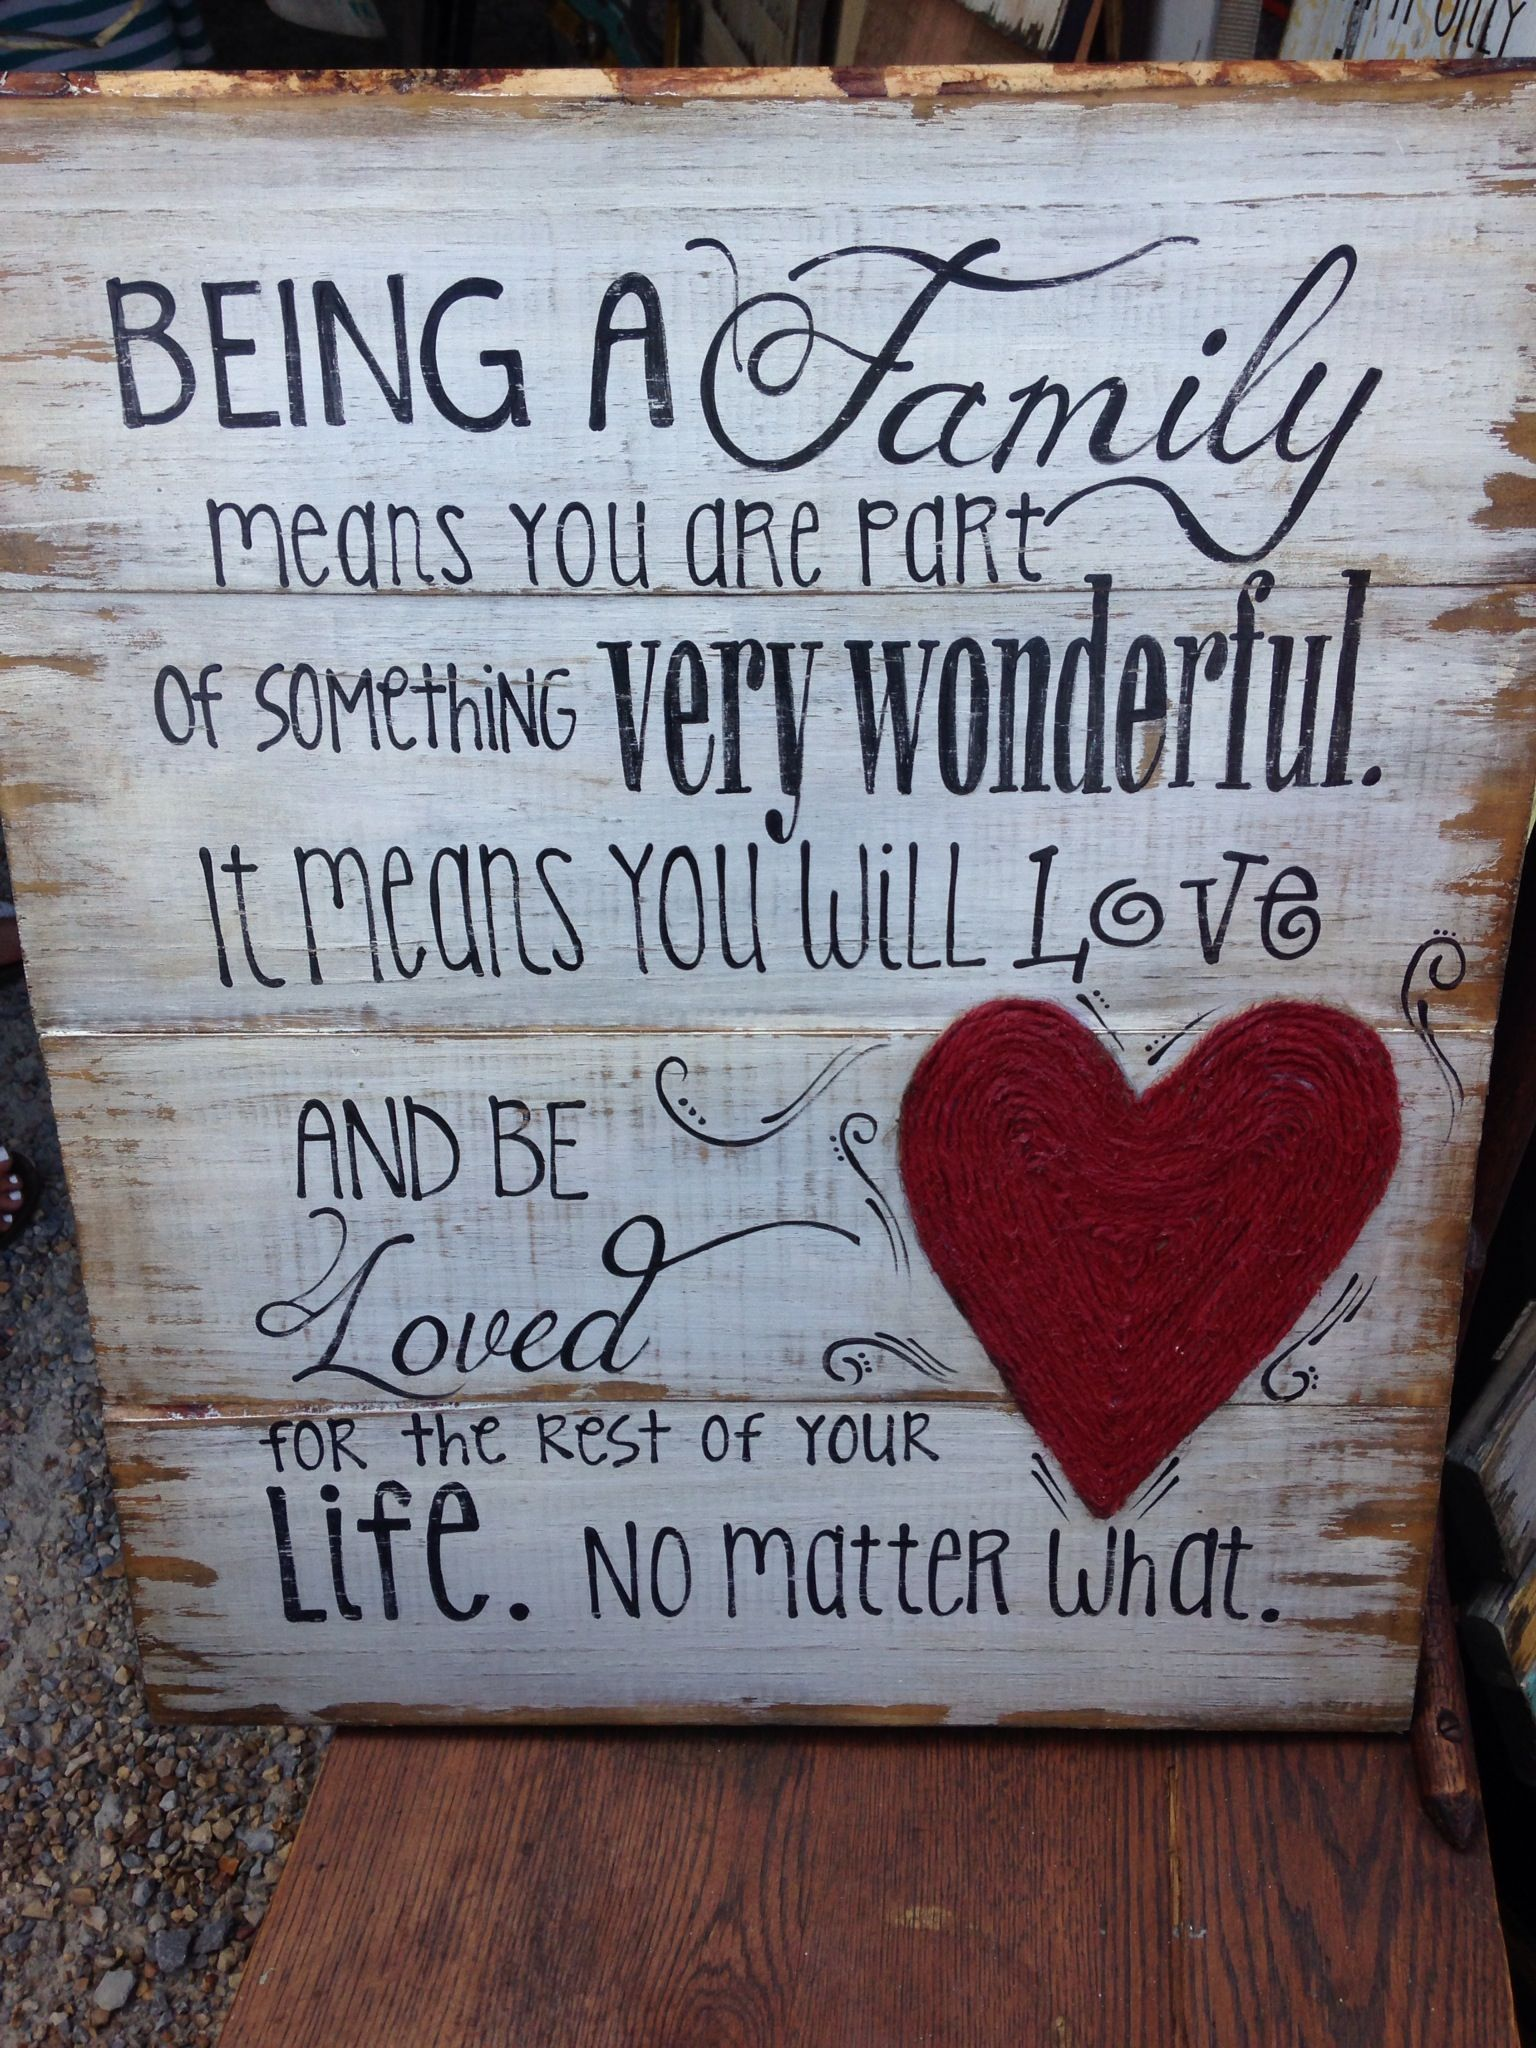 Being a family means you are part of something very